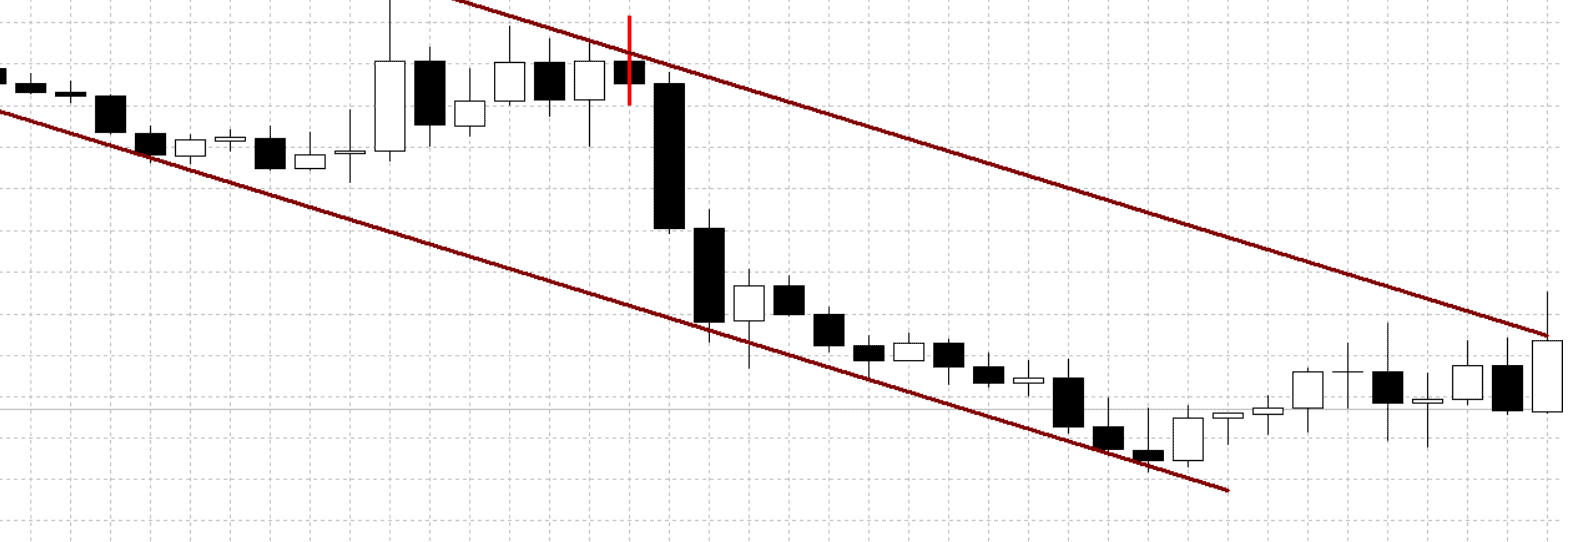 trading pin bar in channels